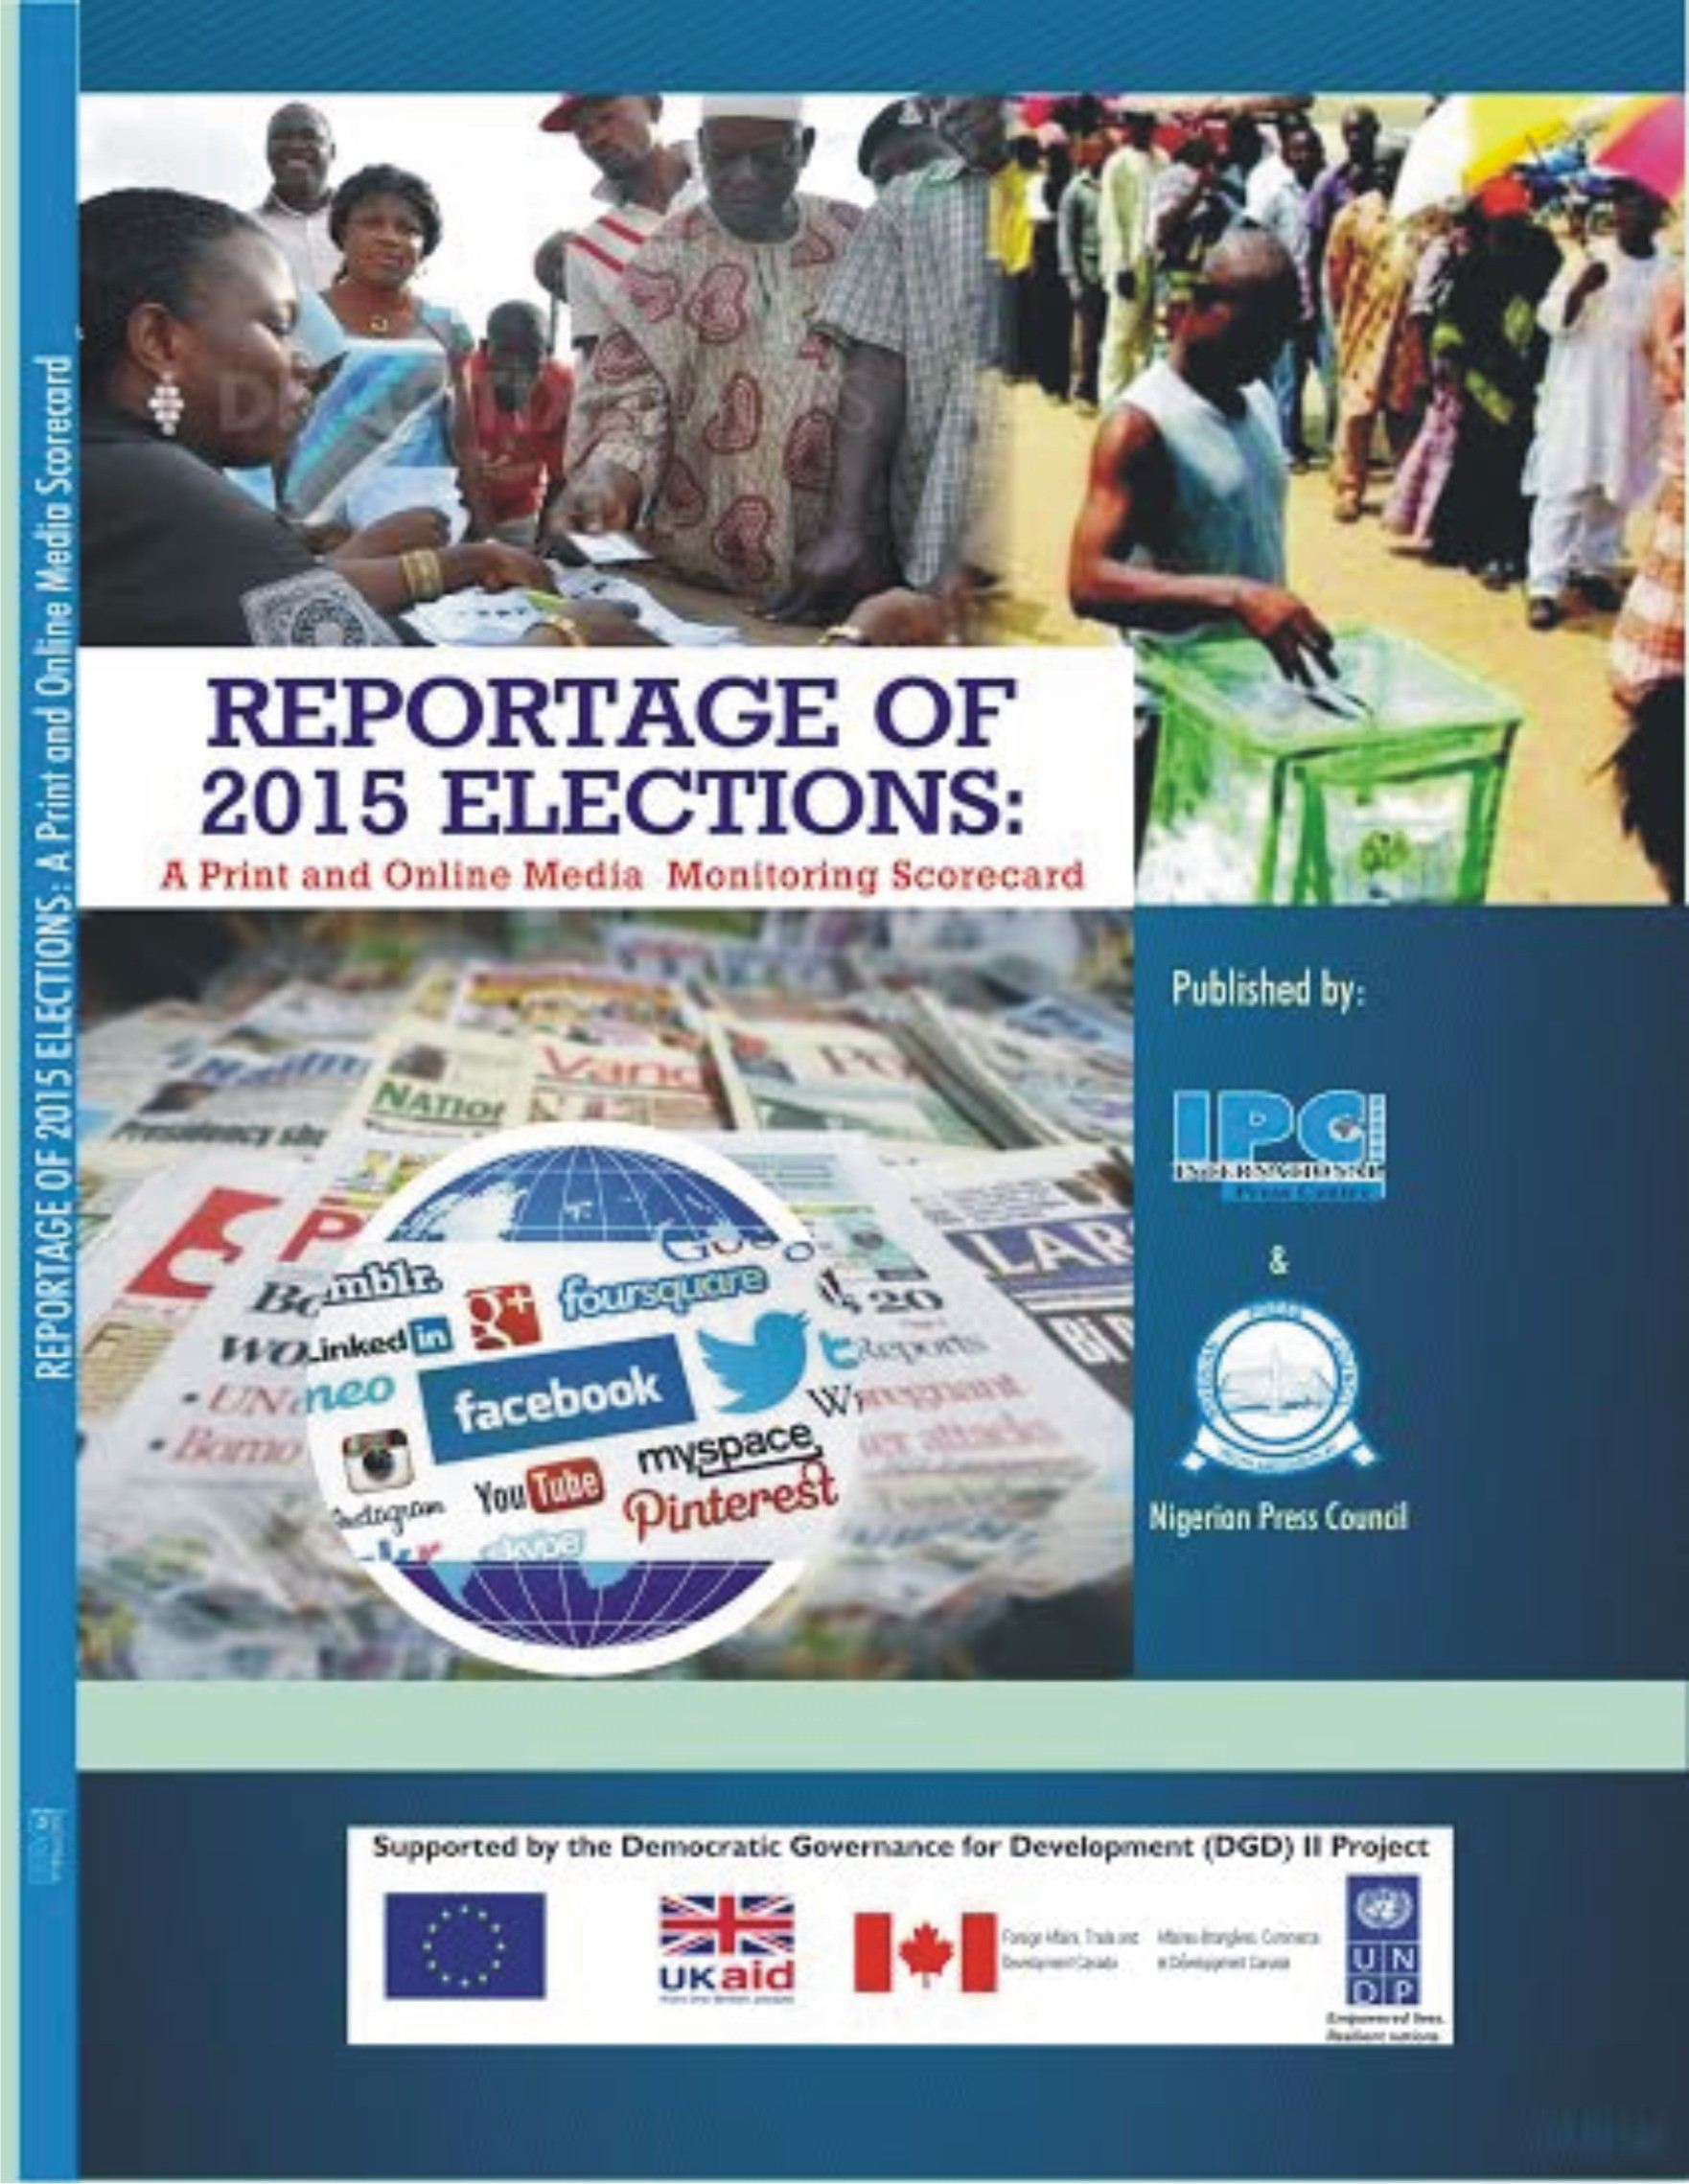 Final report on media coverage of 2015 elections: A monitoring scorecard of print and online media